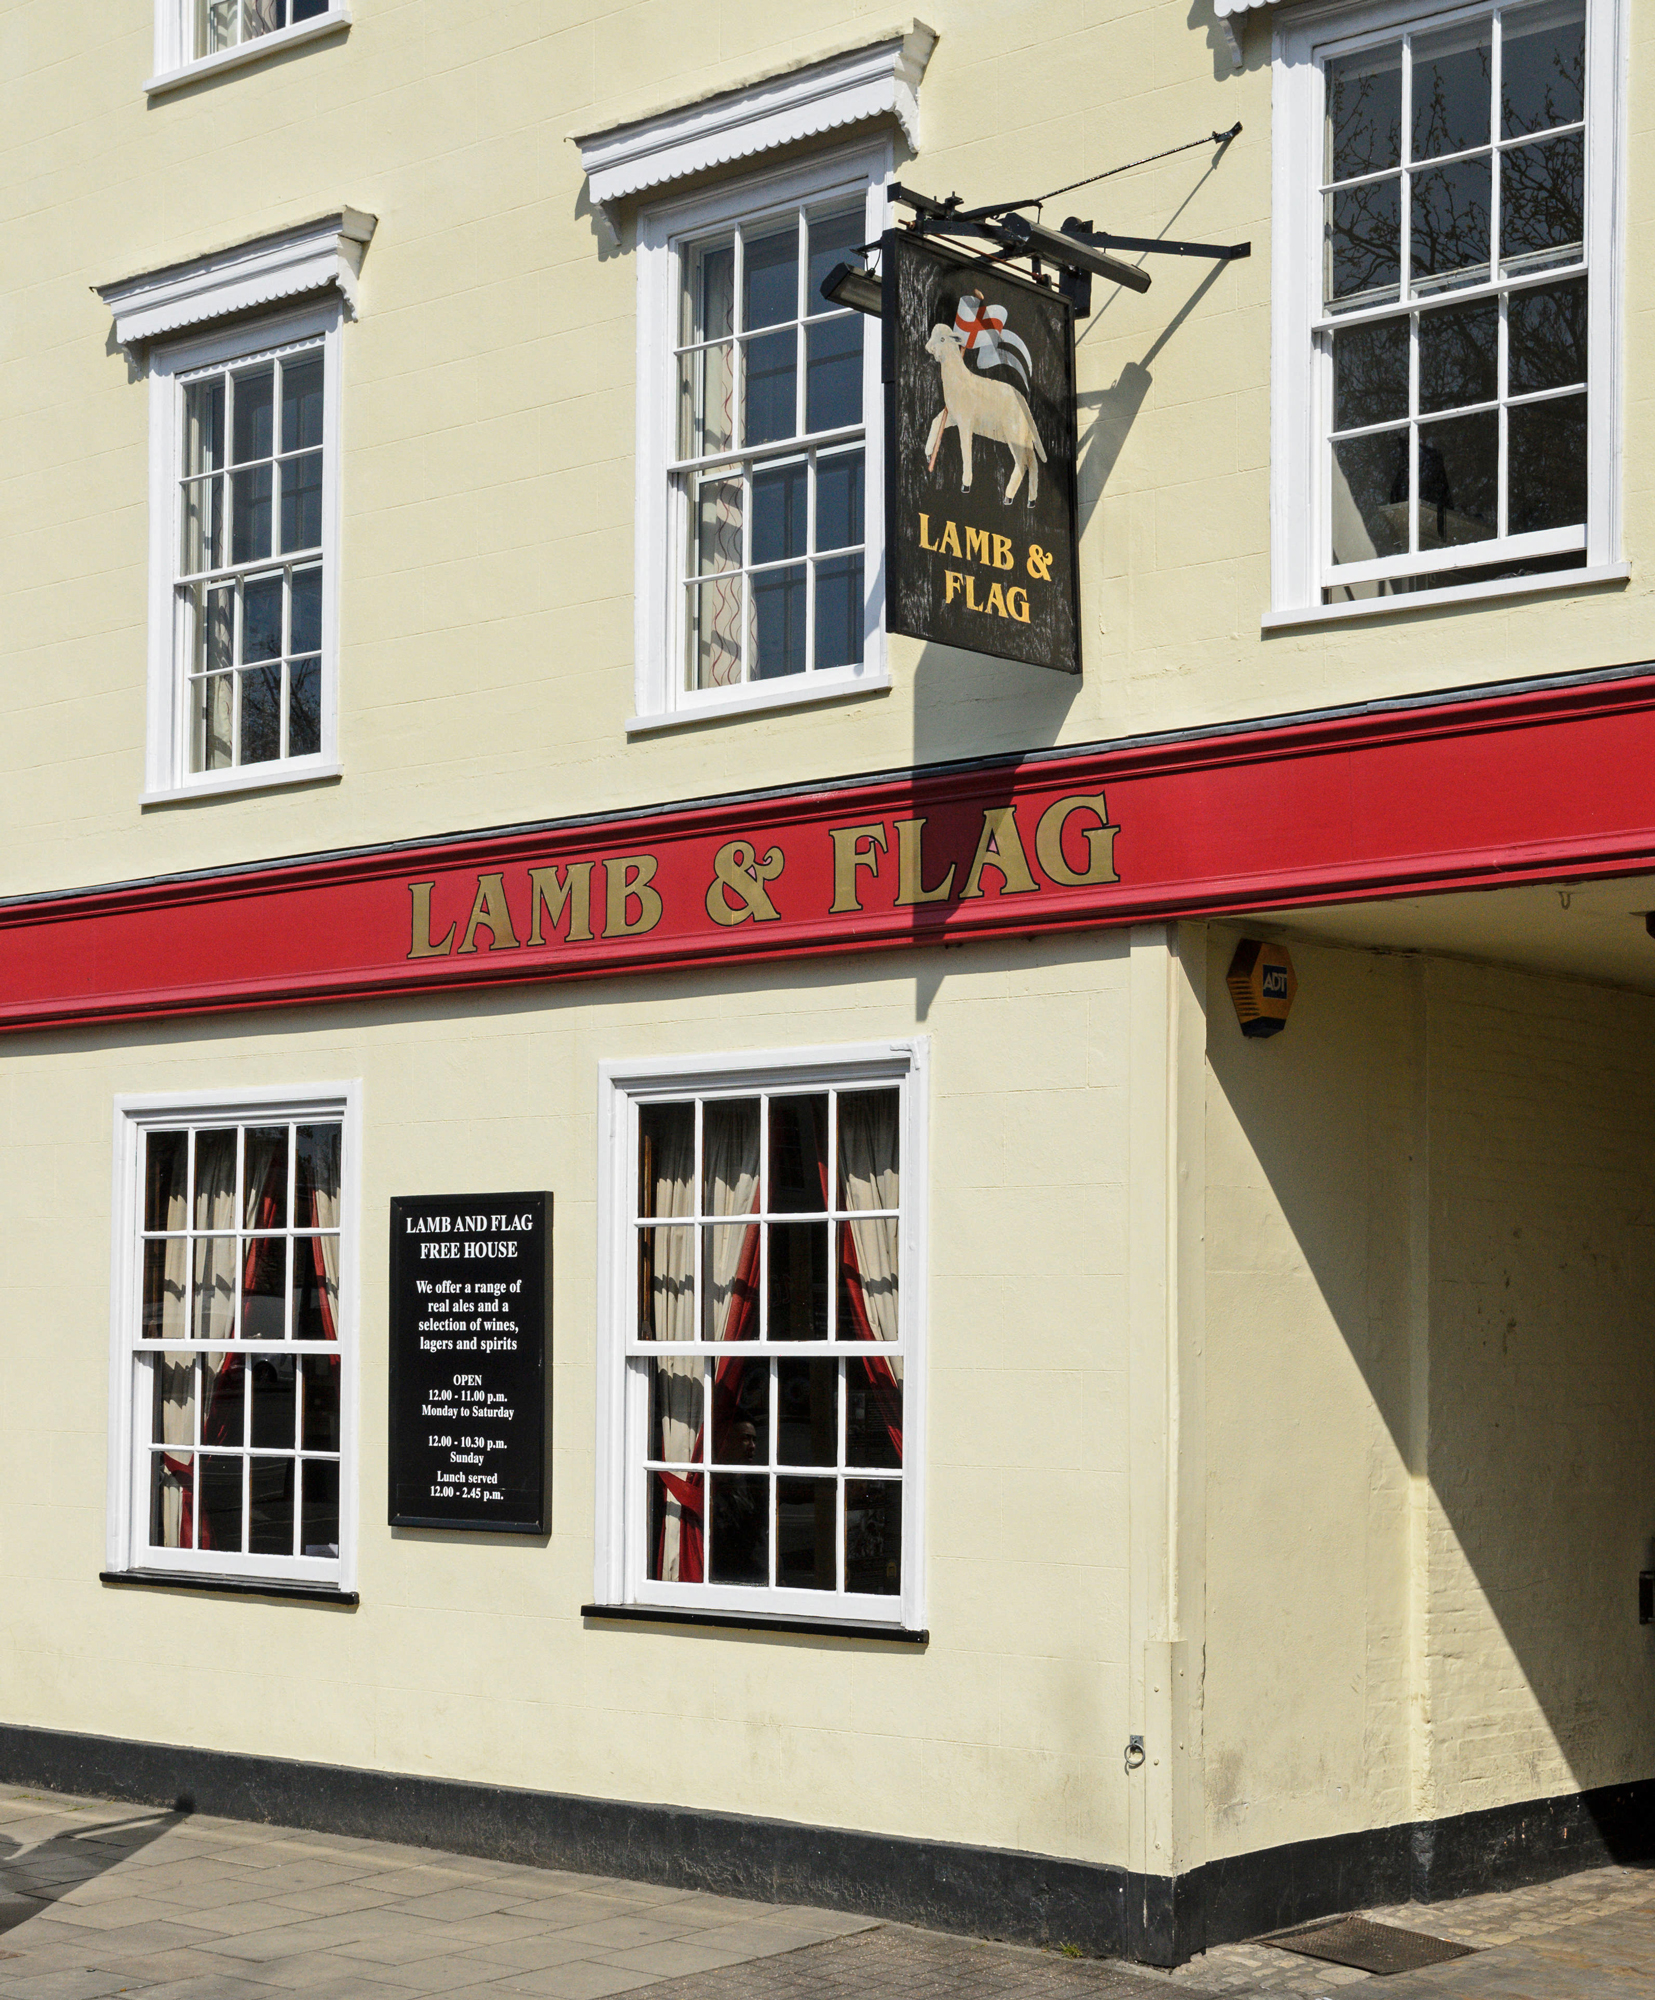 Lamb & Flag Pub in Oxord